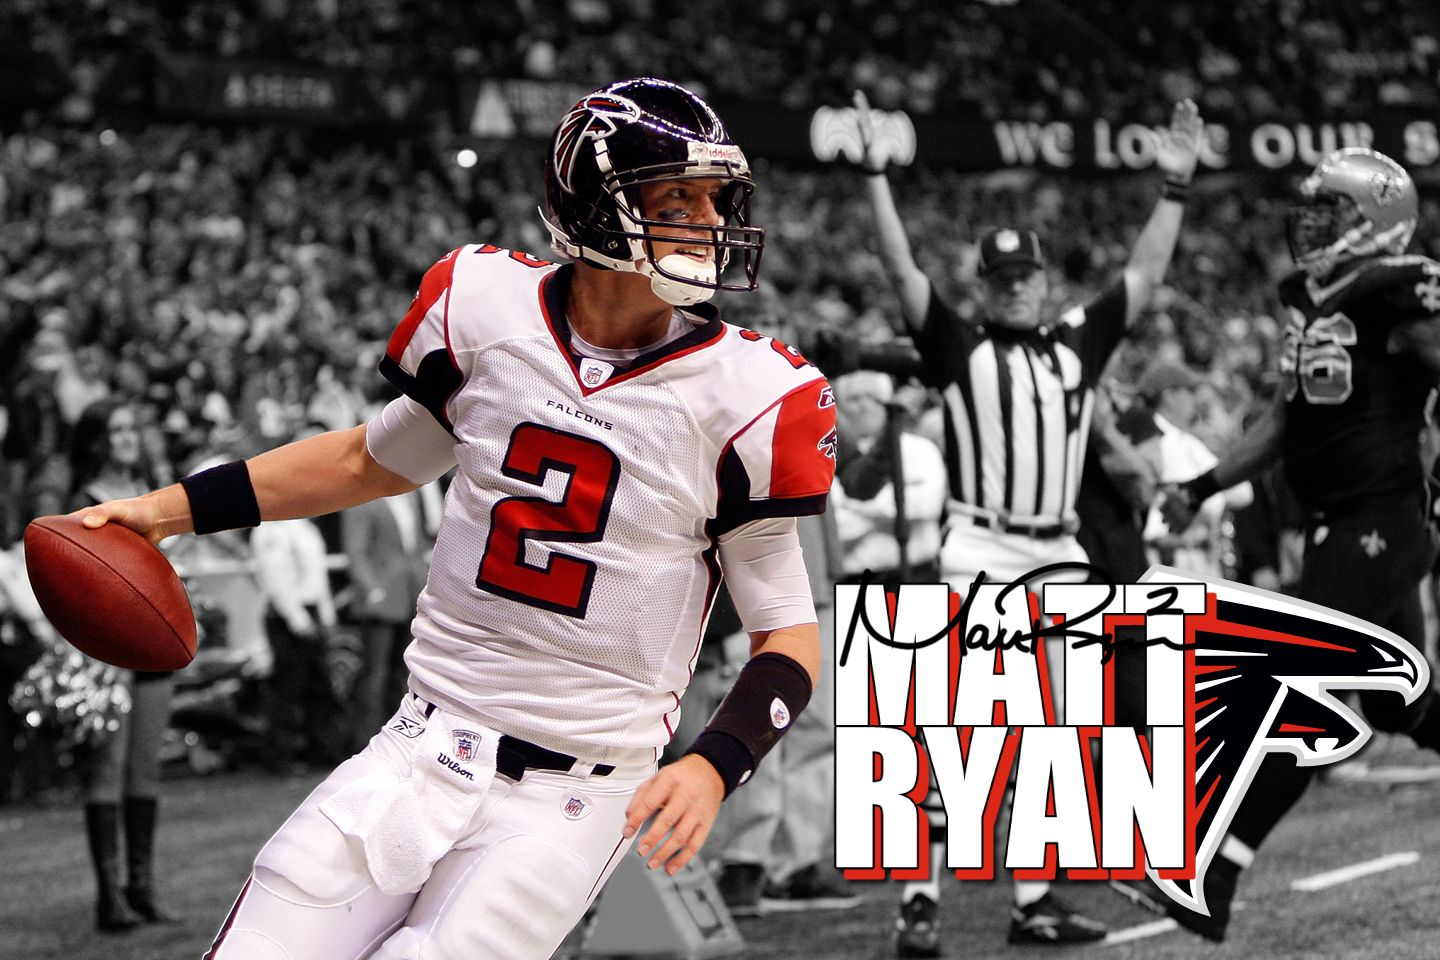 I love football and Matt Ryan football Pinterest